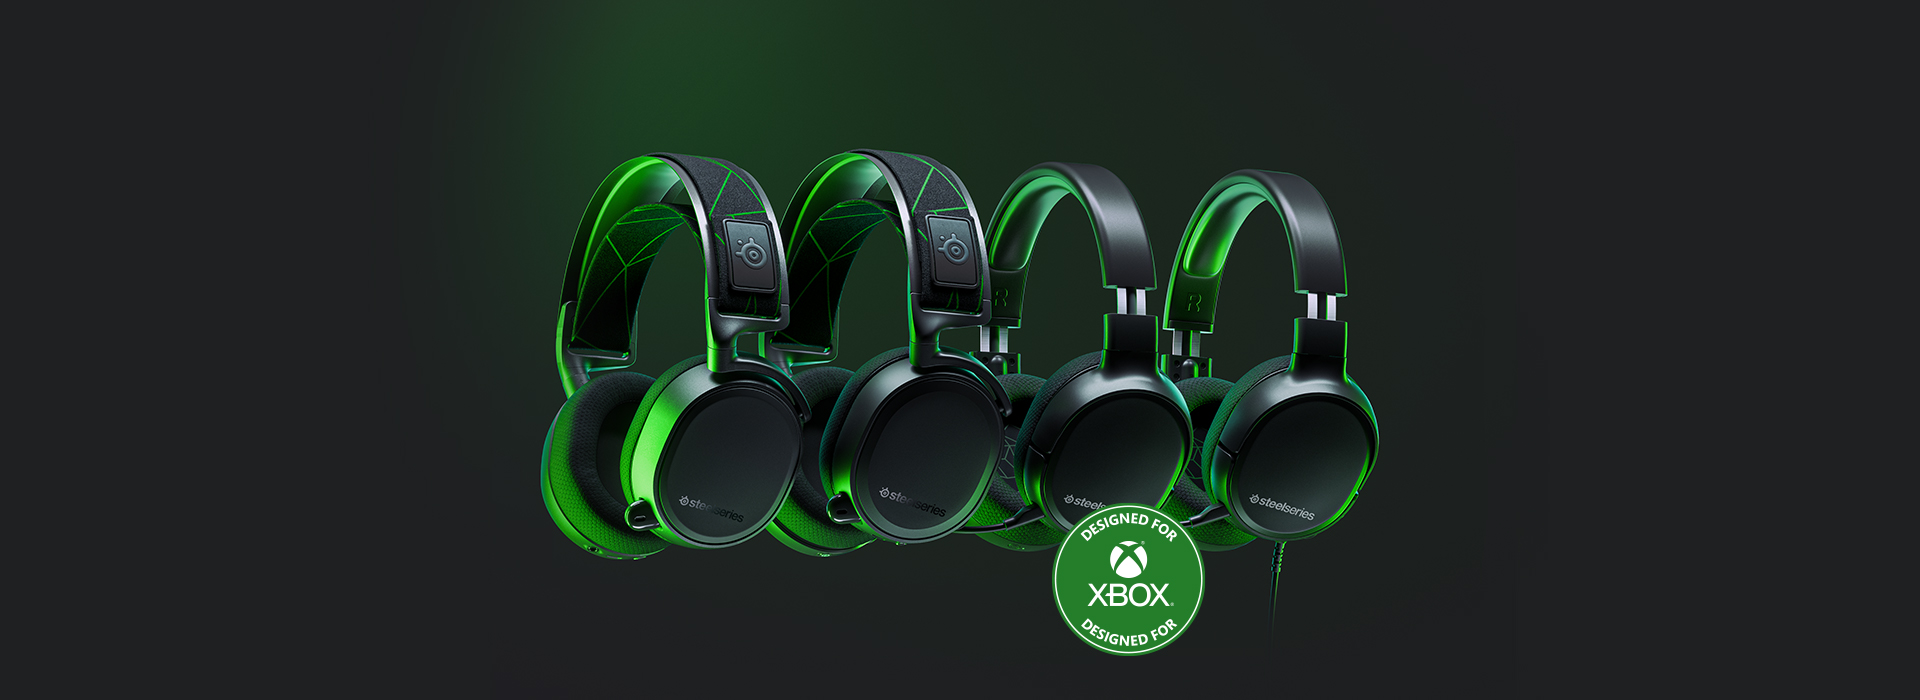 4 Arctis headset models that are compatible with Xbox floating in space